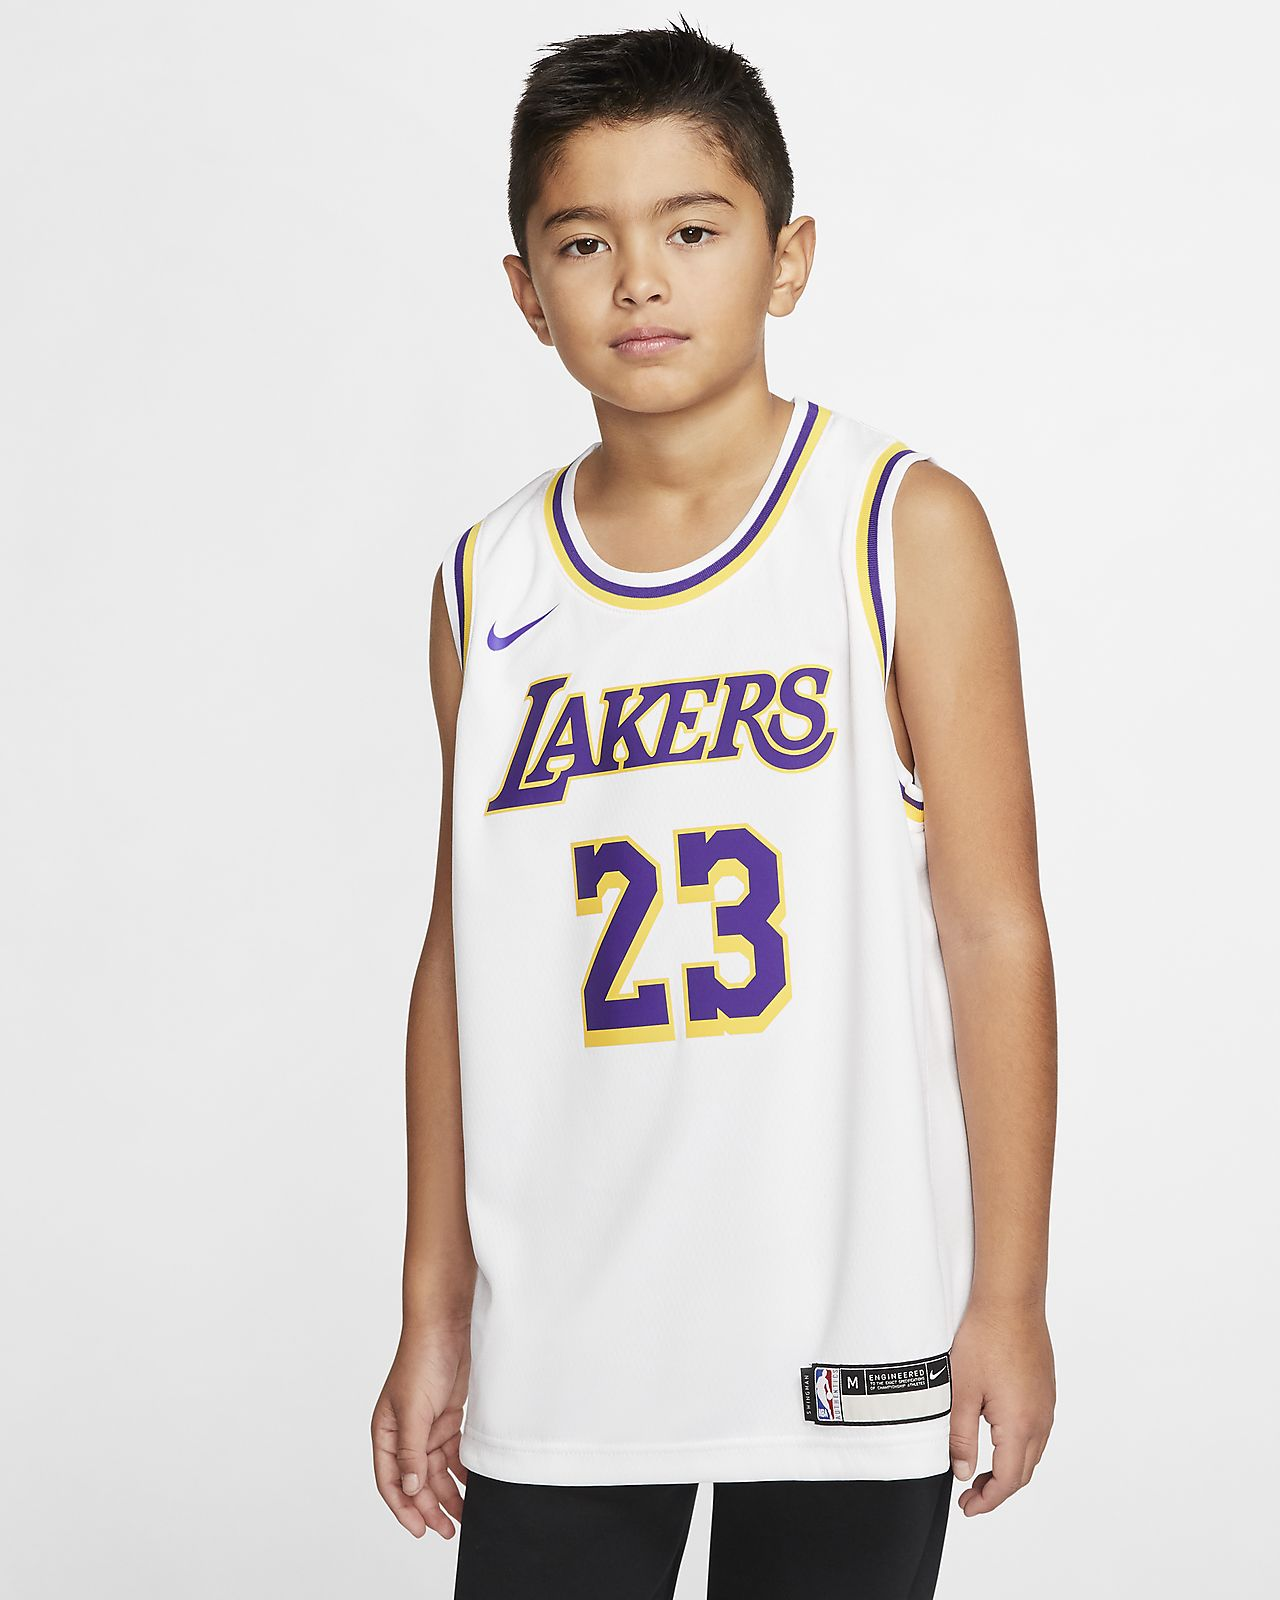 LeBron James Association Edition Swingman Jersey (Los Angeles Lakers) Big Kids' NBA Jersey